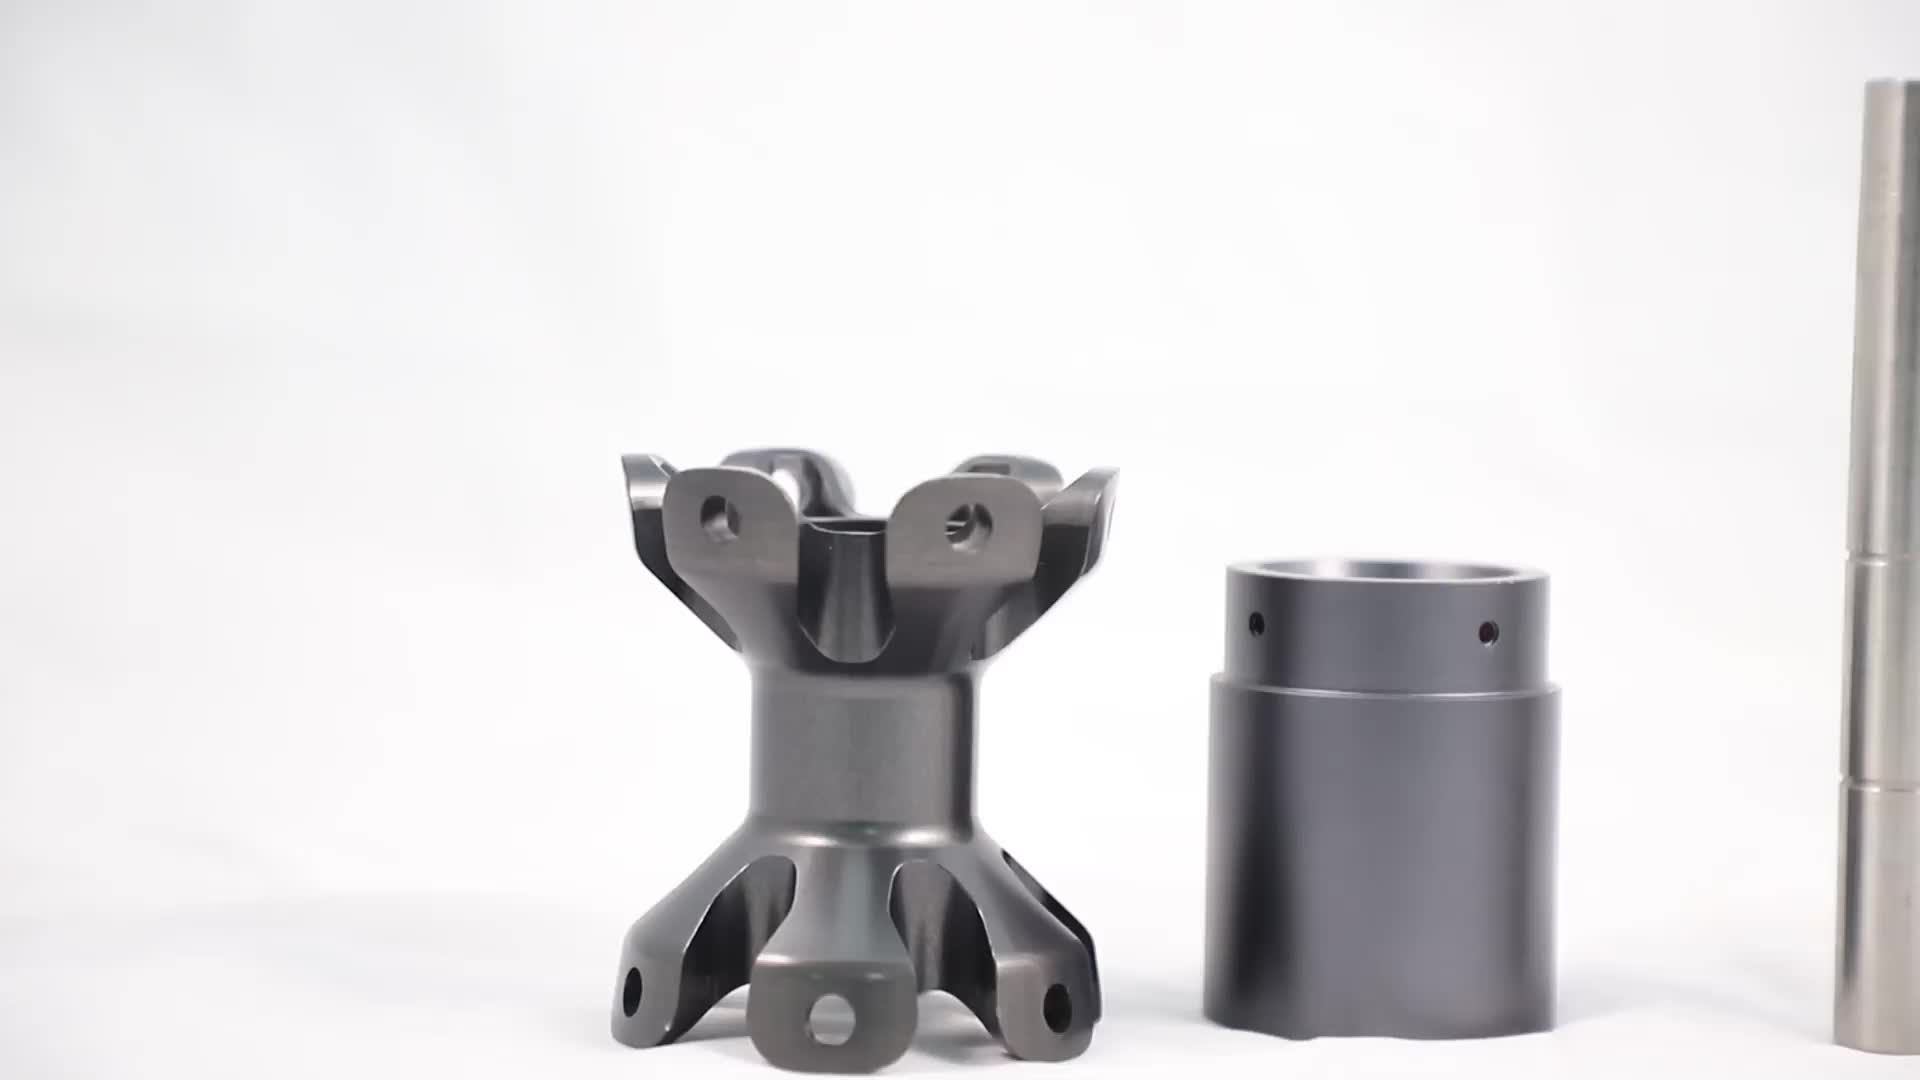 5 Axis CNC Machining Flower-like Black Anodized Surface 6061 Aluminum Bicycle Hubs parts